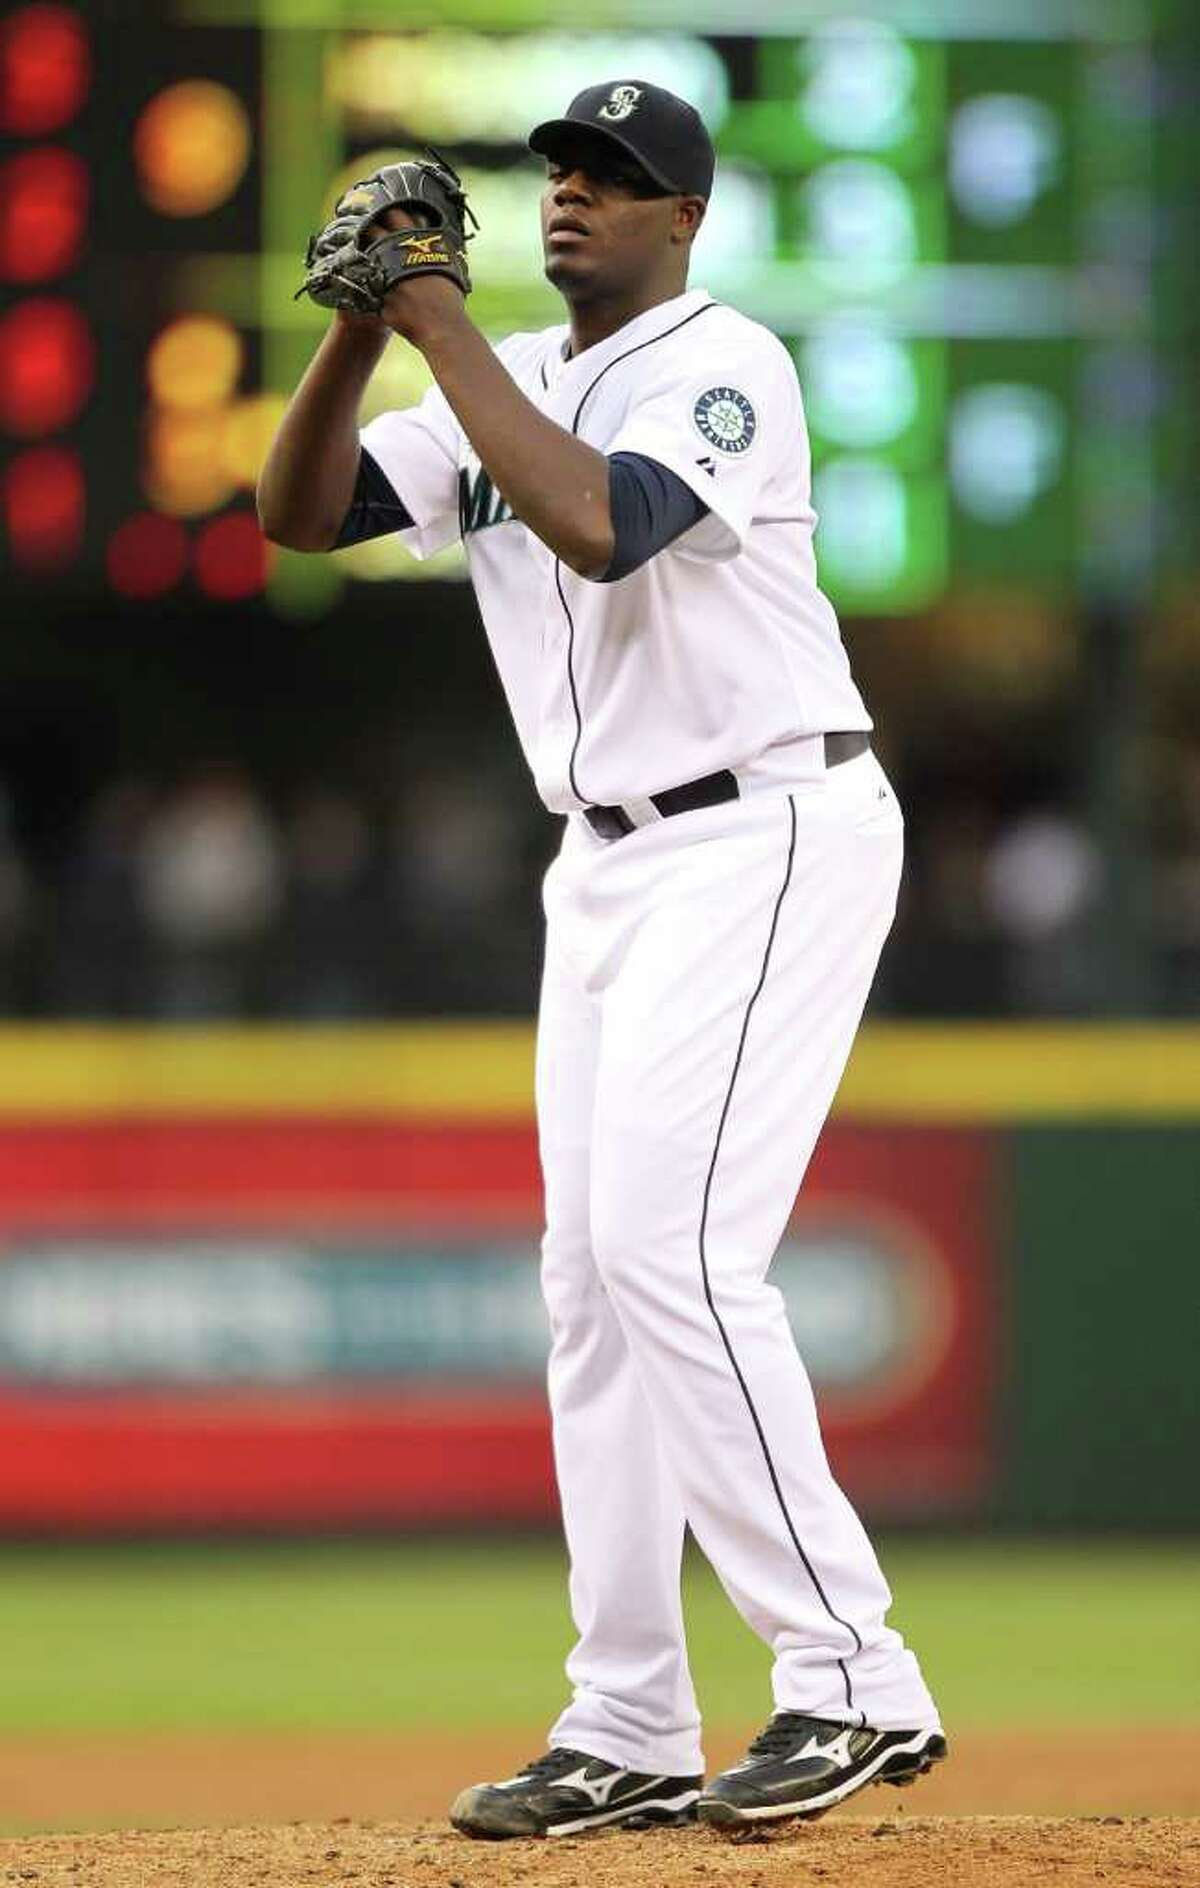 Top 10 rookie seasons by a Mariners pitcher: In 2011, Mariners rookie right-hander Michael Pineda appeared well on his way to the American League Rookie of the Year award and he's 6-3 and his 2.33 ERA is fourth best in the American League. His 76 strikeouts ranked ninth in AL at one point. Pineda's dominance evokes memories of previous Mariners rookie pitching phenoms. Some panned out. Some flamed out. And the jury is still out on a few. Here are the top 10 rookie seasons by a Mariners pitcher.